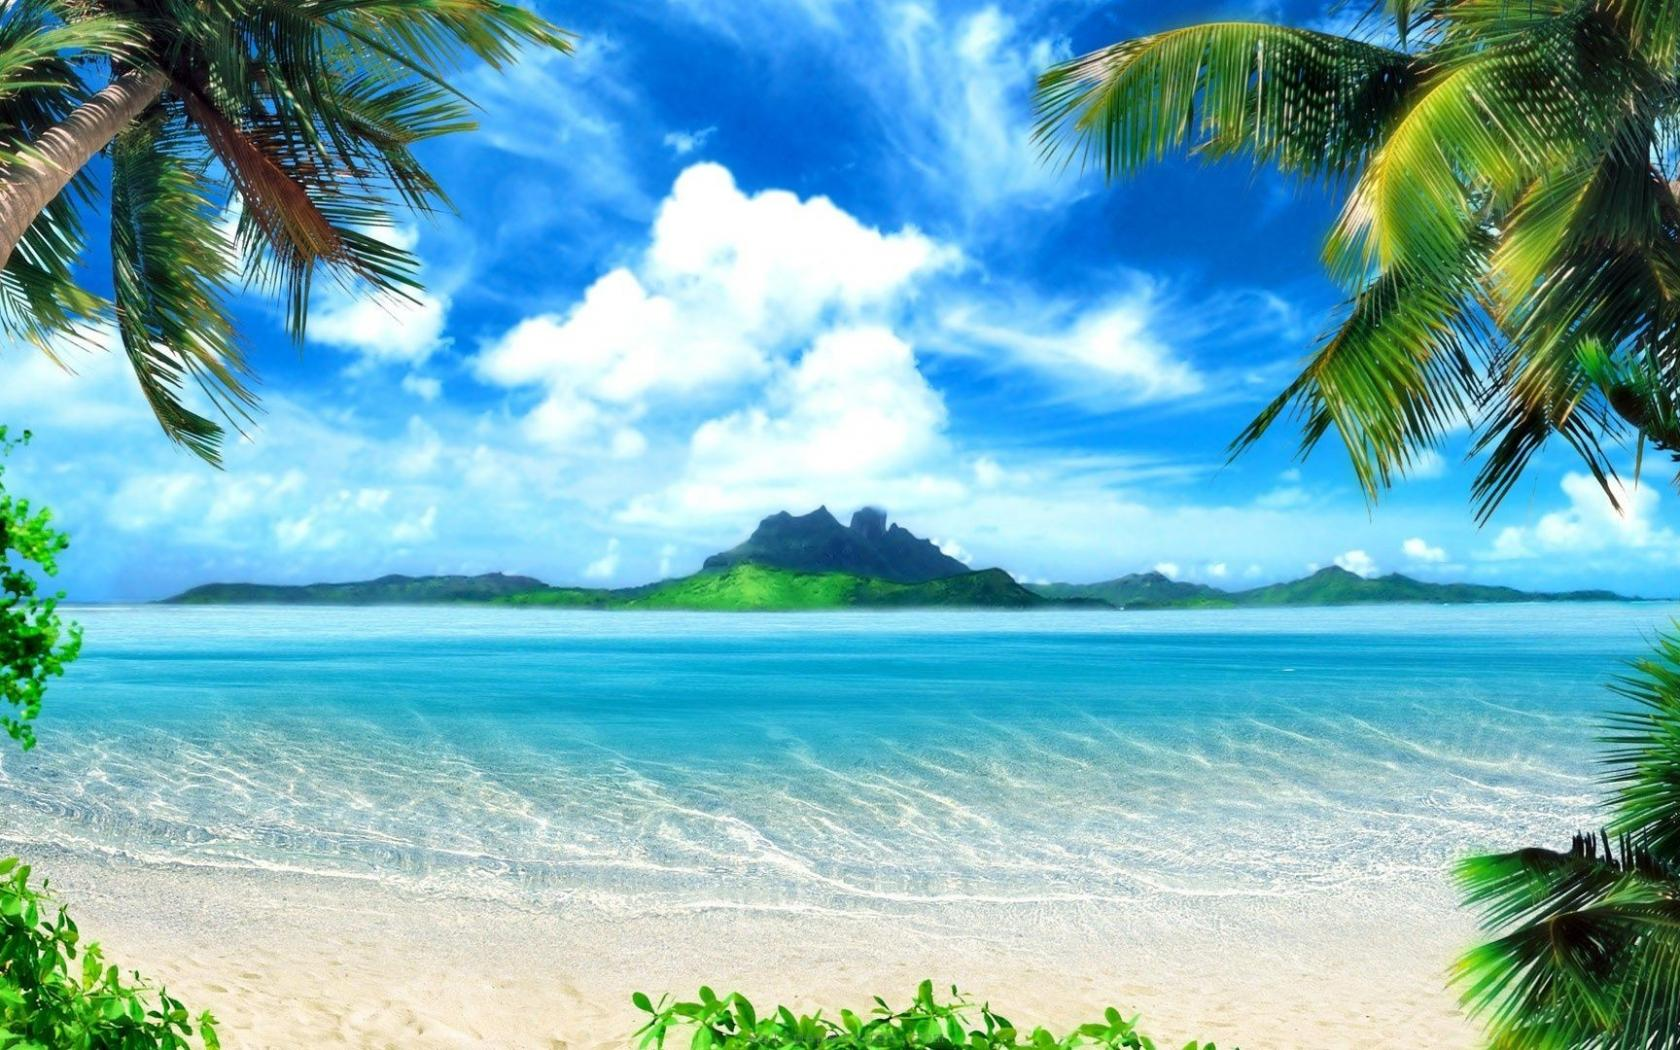 Beautiful Beach Islands Hd Photography Wallpaper Wallpapers Gallery 1680x1050